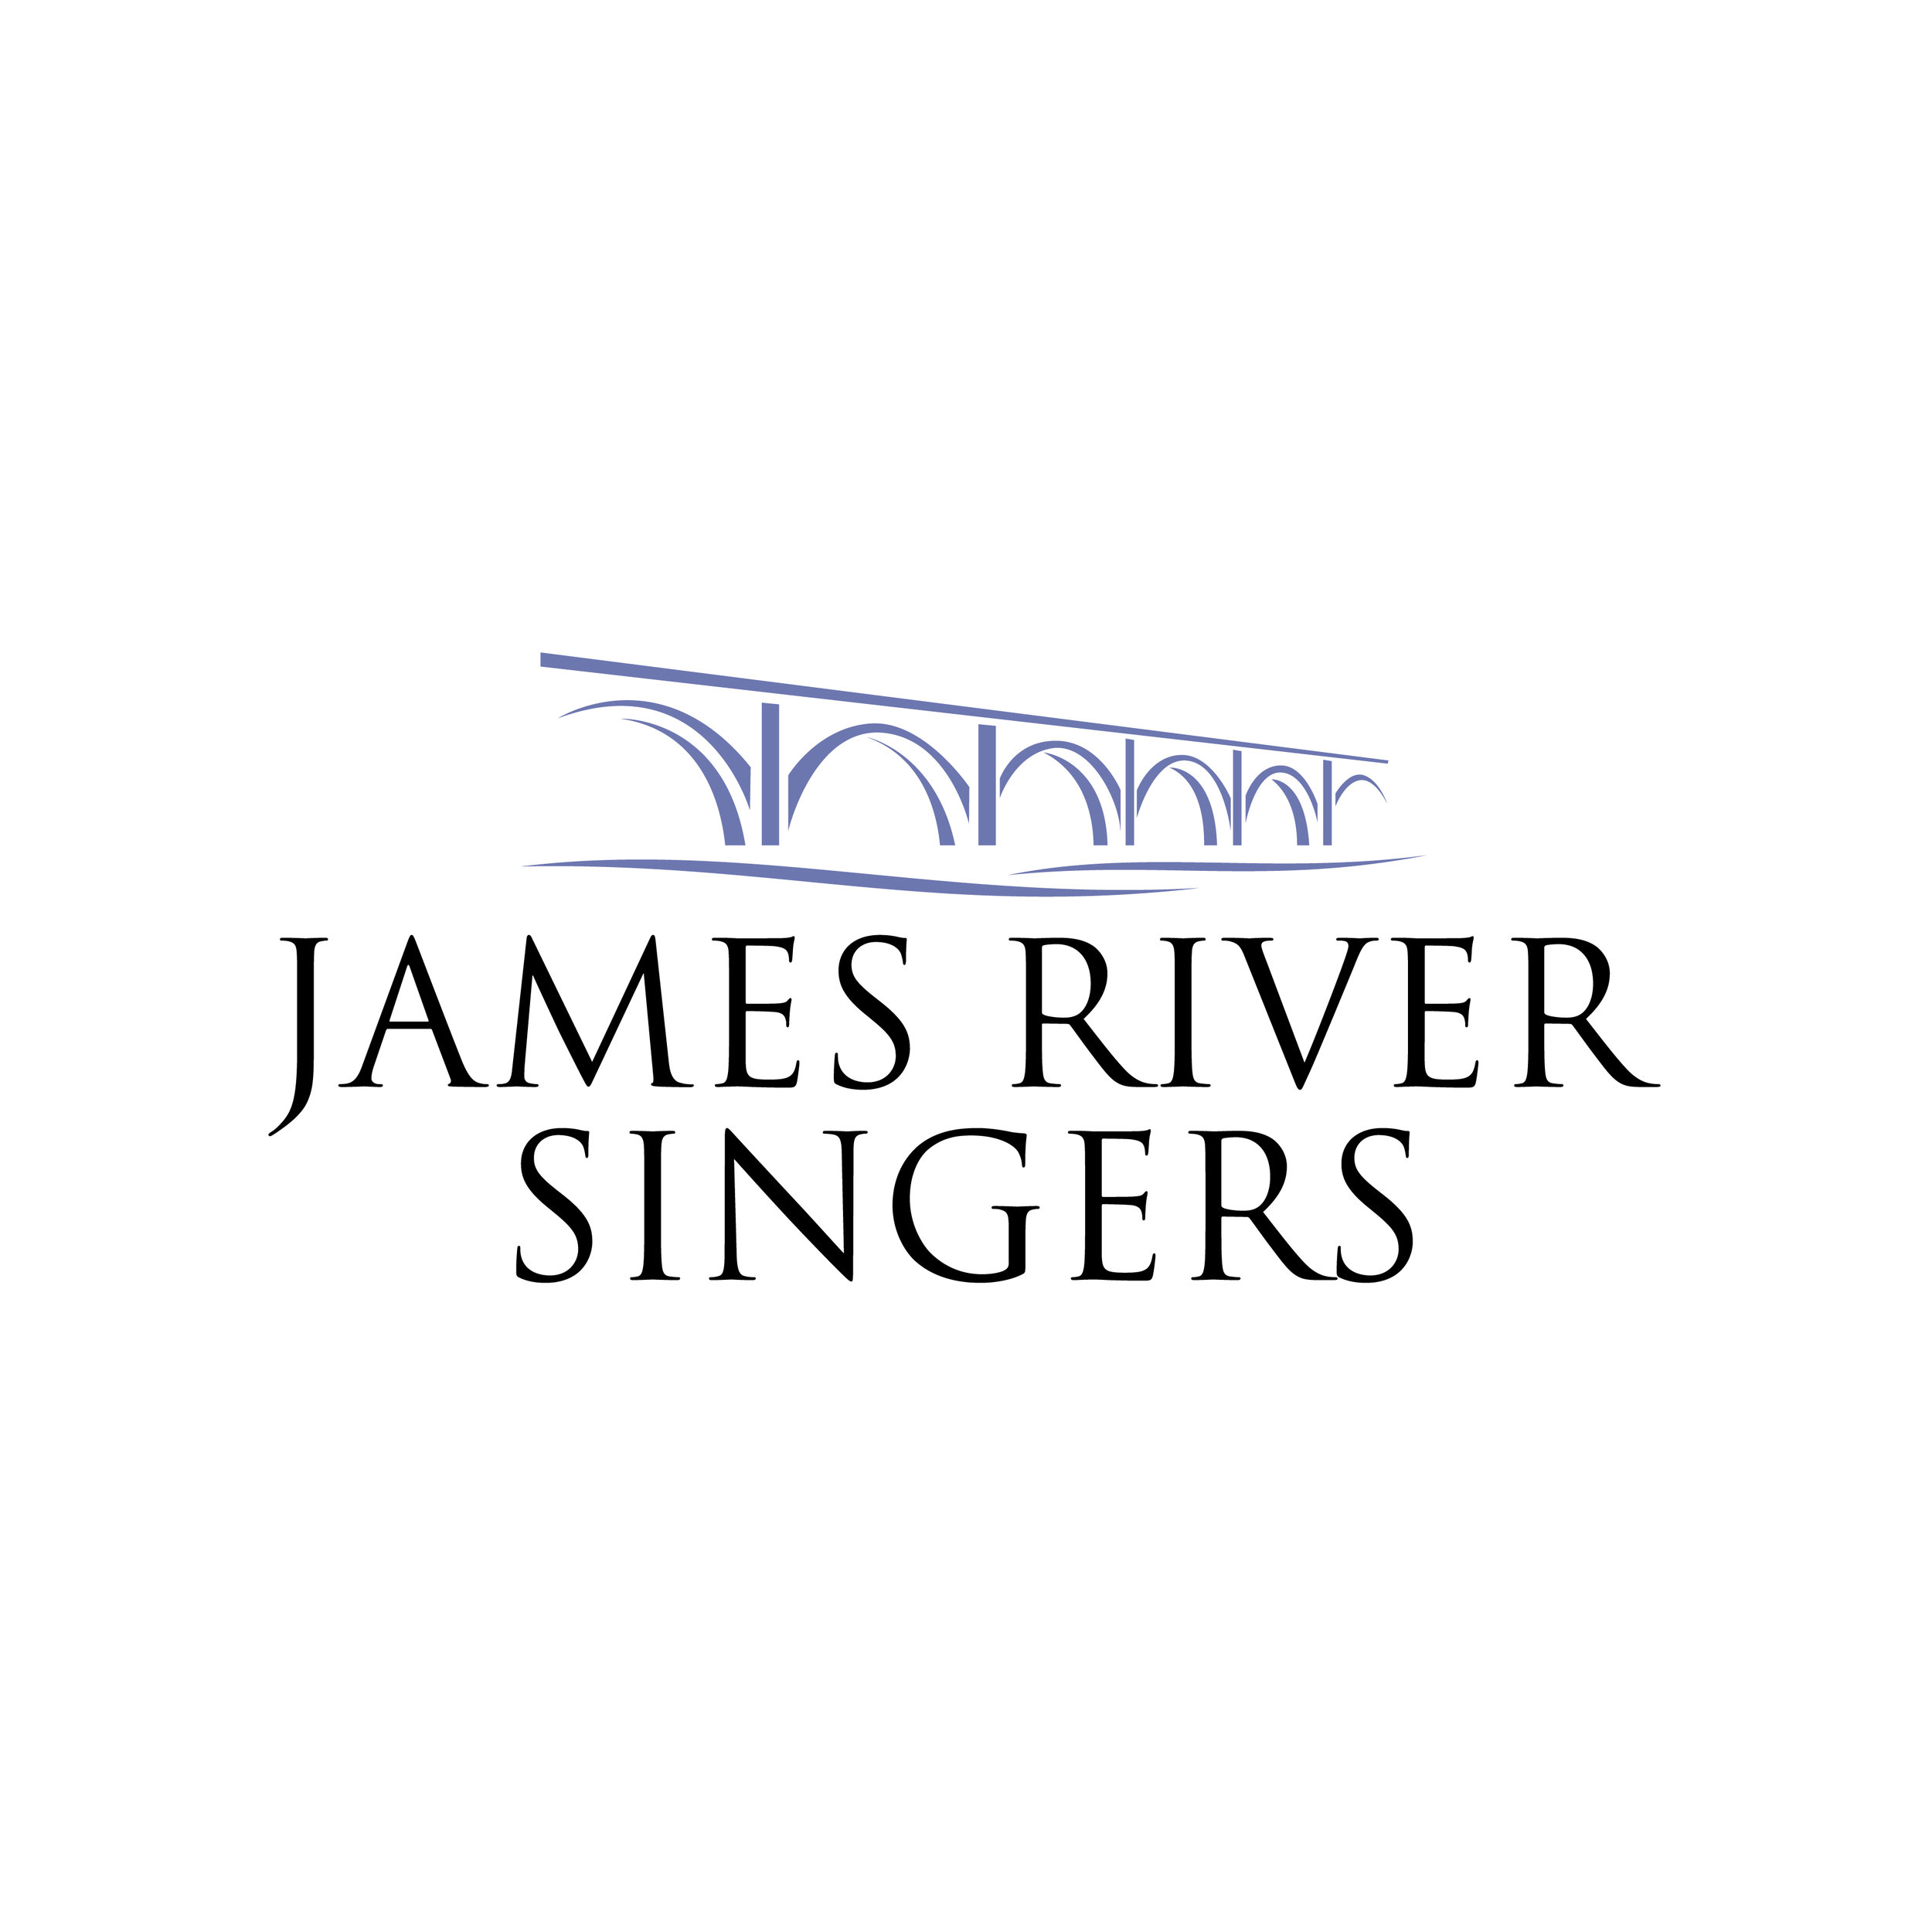 JAMES RIVER SINGERS White background (1).jpg